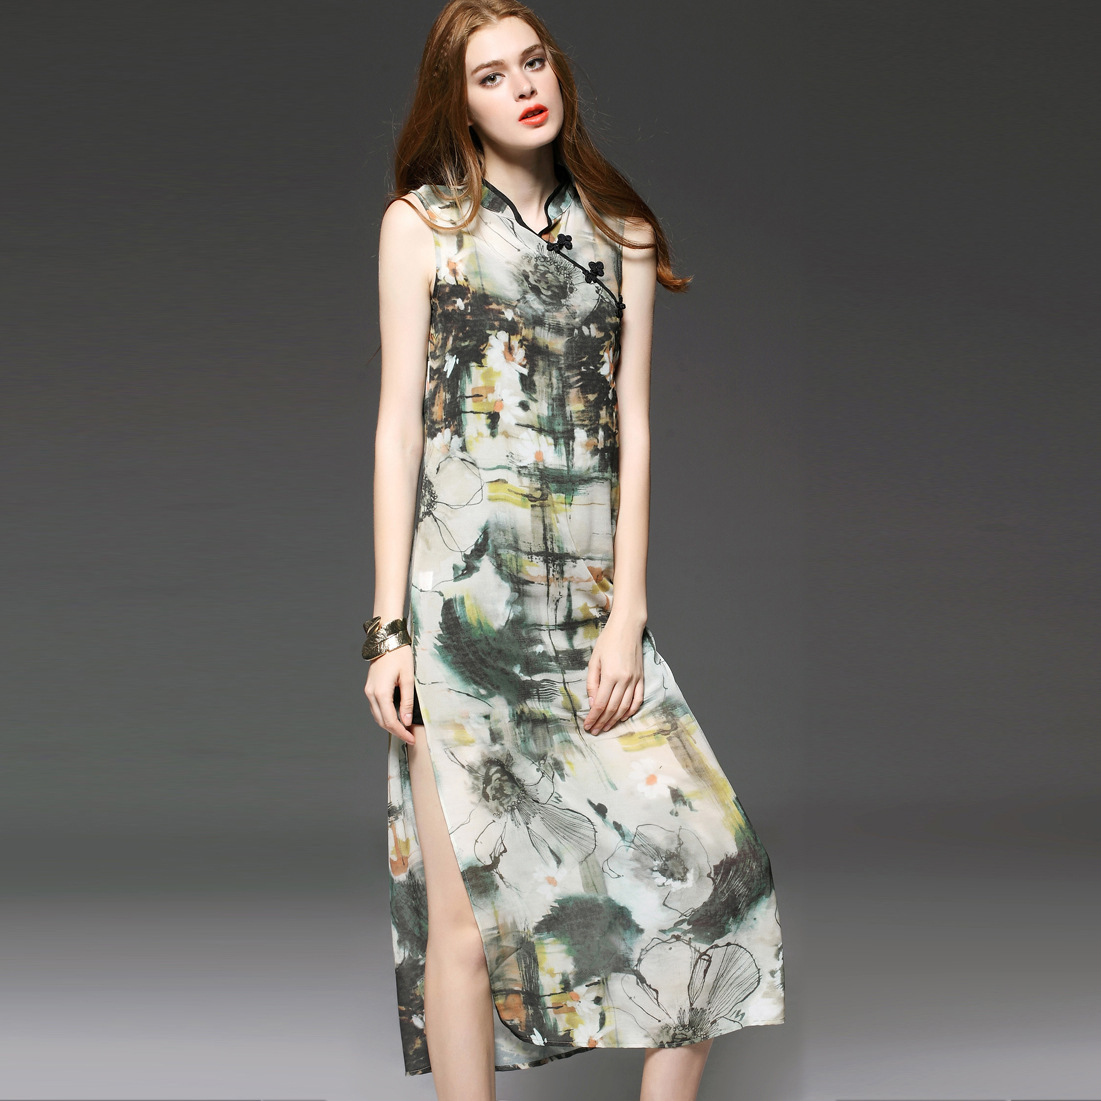 2015 Summer Style New Women 39 S Casual Fashion Runway Style